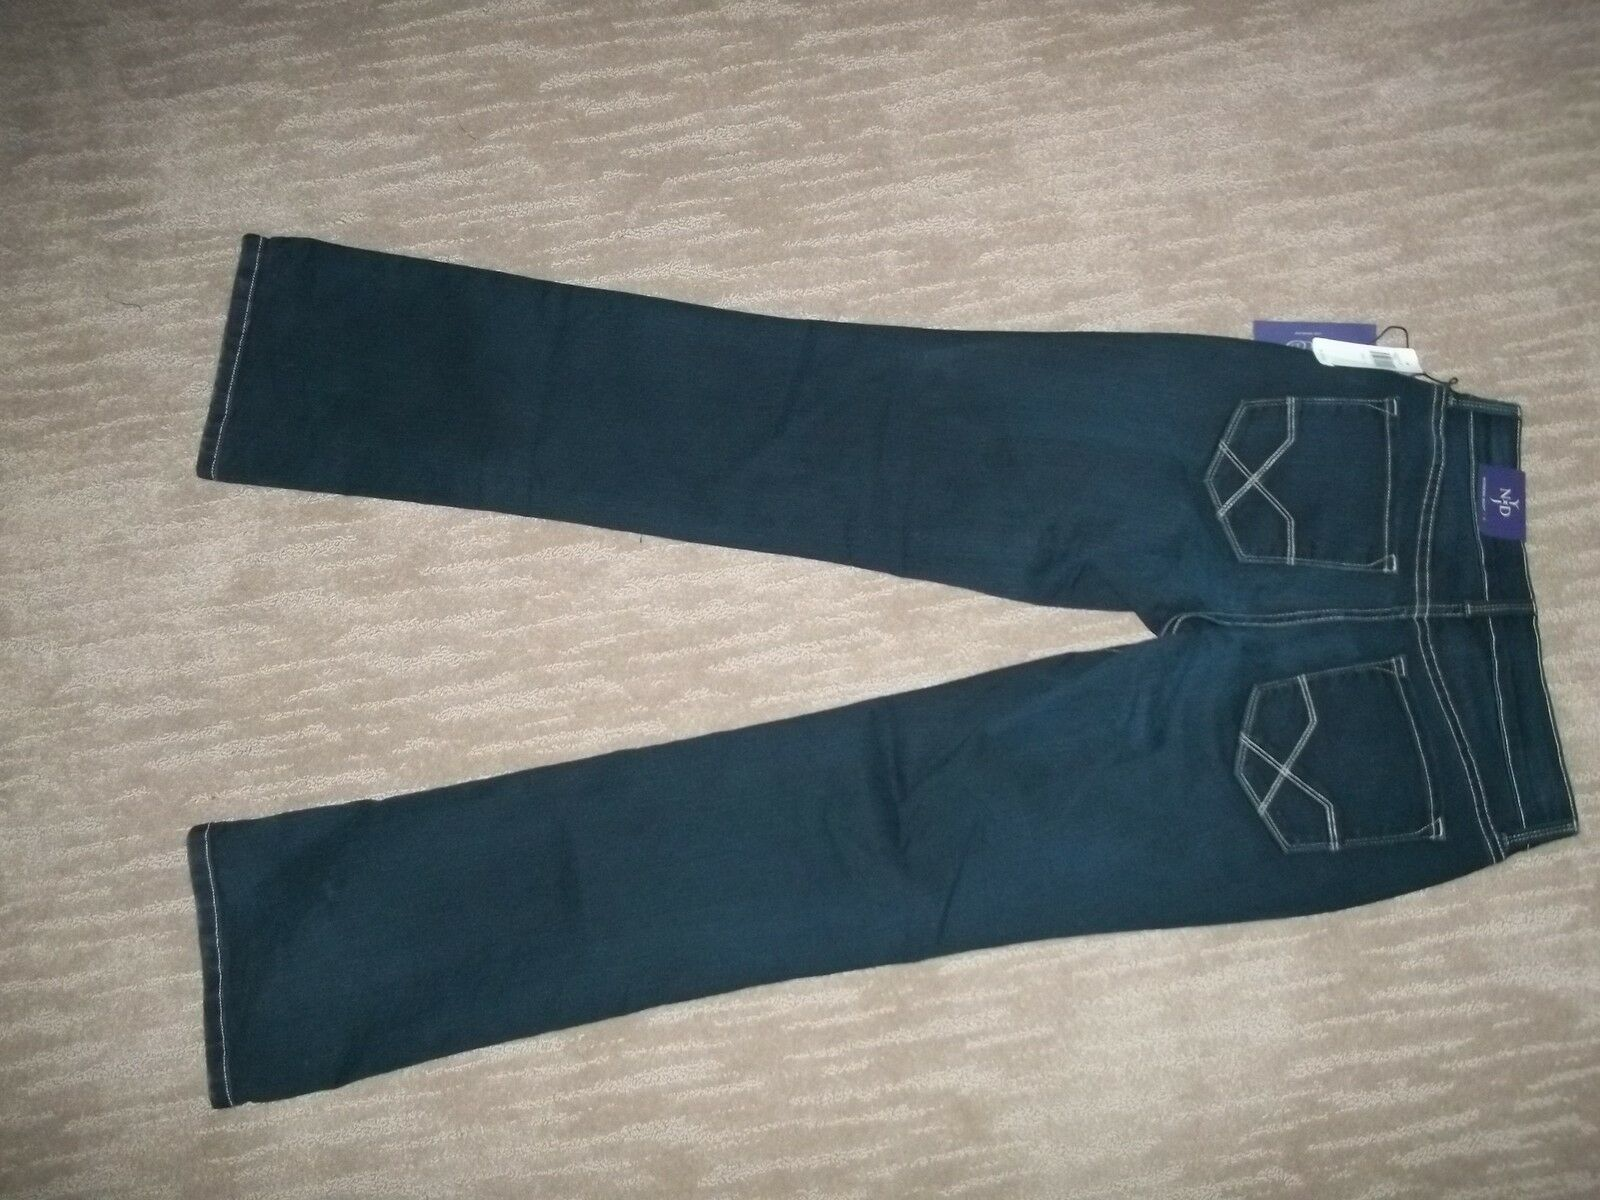 Nydj not your daughters Adelgazar moderno botacut Denim Jeans Jeans Jeans para mujeres talla 0 Nuevo 134799